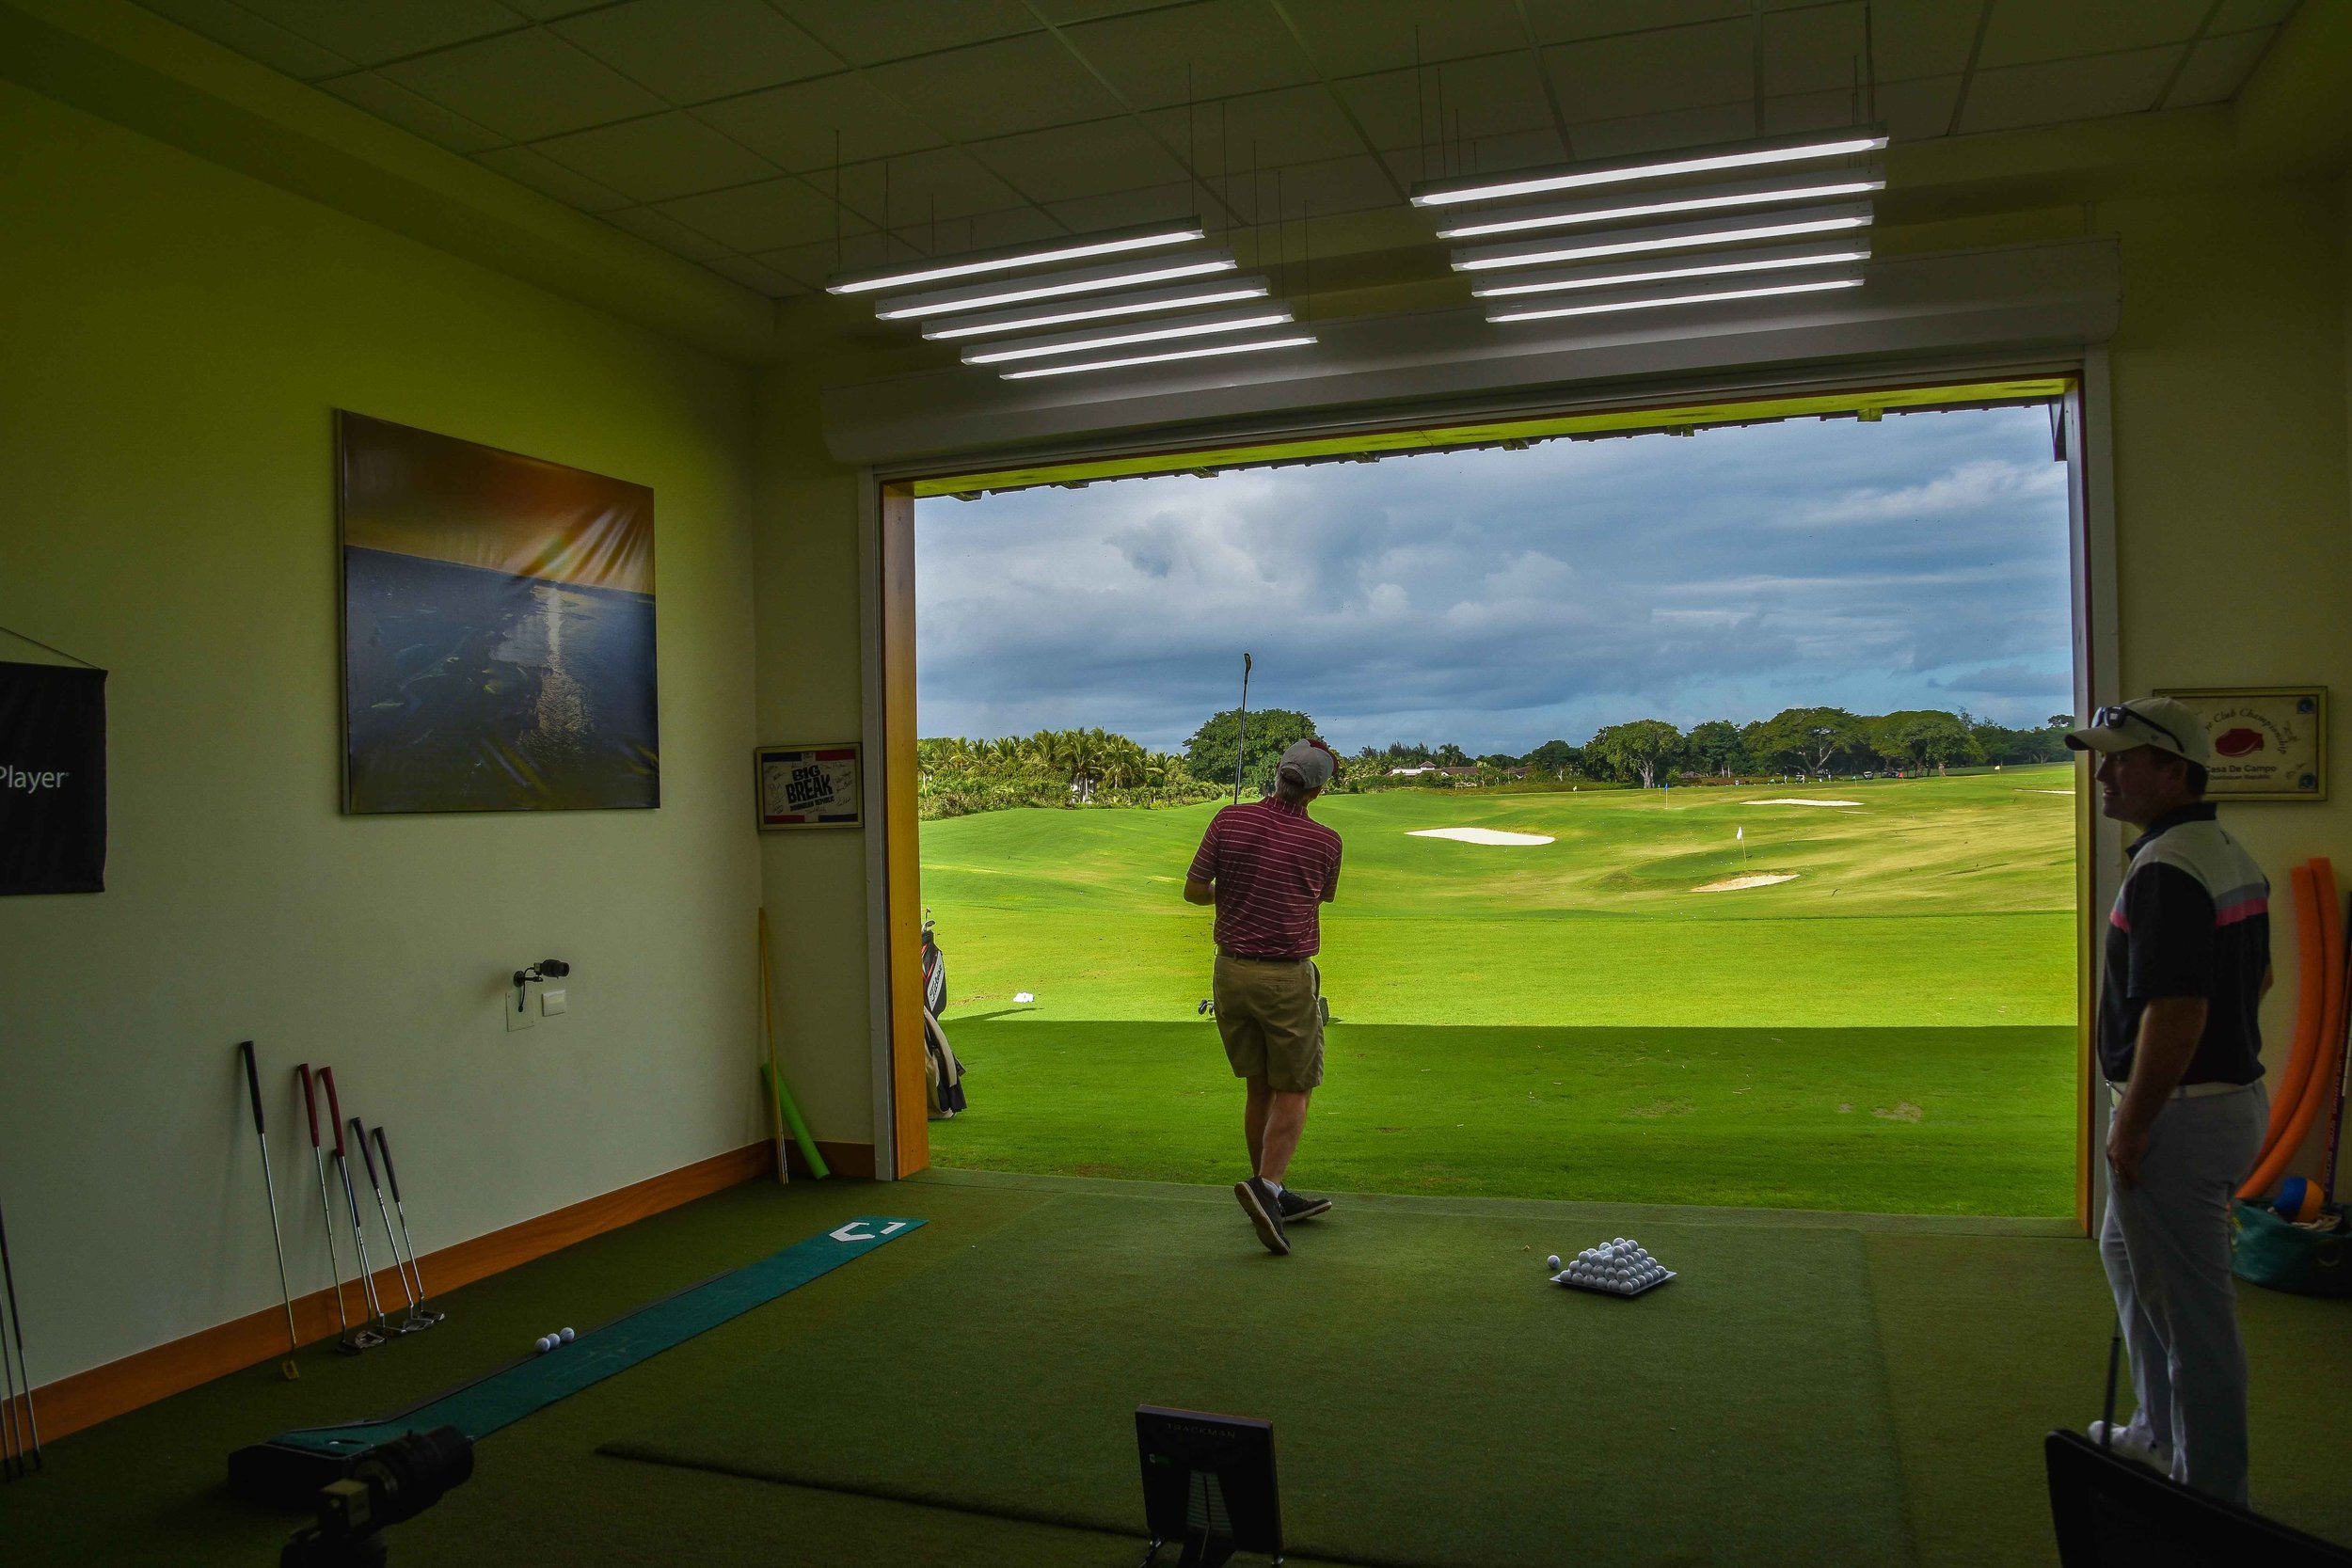 The view from inside the teaching bay. Eric is on the far right getting ready to dispense some serious golf knowledge.